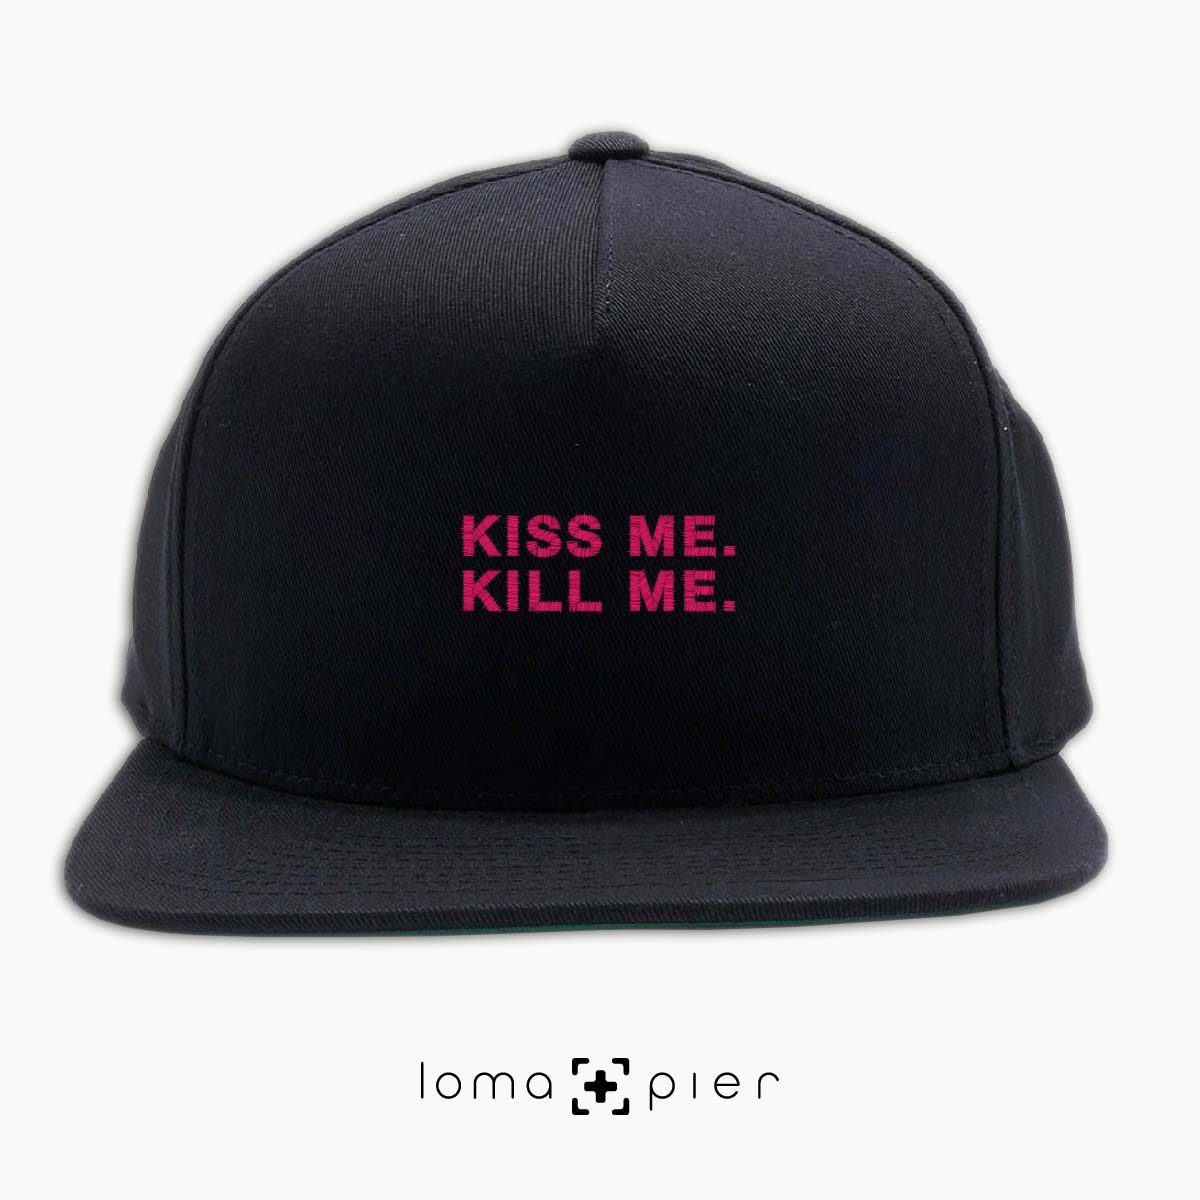 KISS ME. KILL ME. typography embroidered on a black classic snapback hat with pink thread by loma+pier hat store